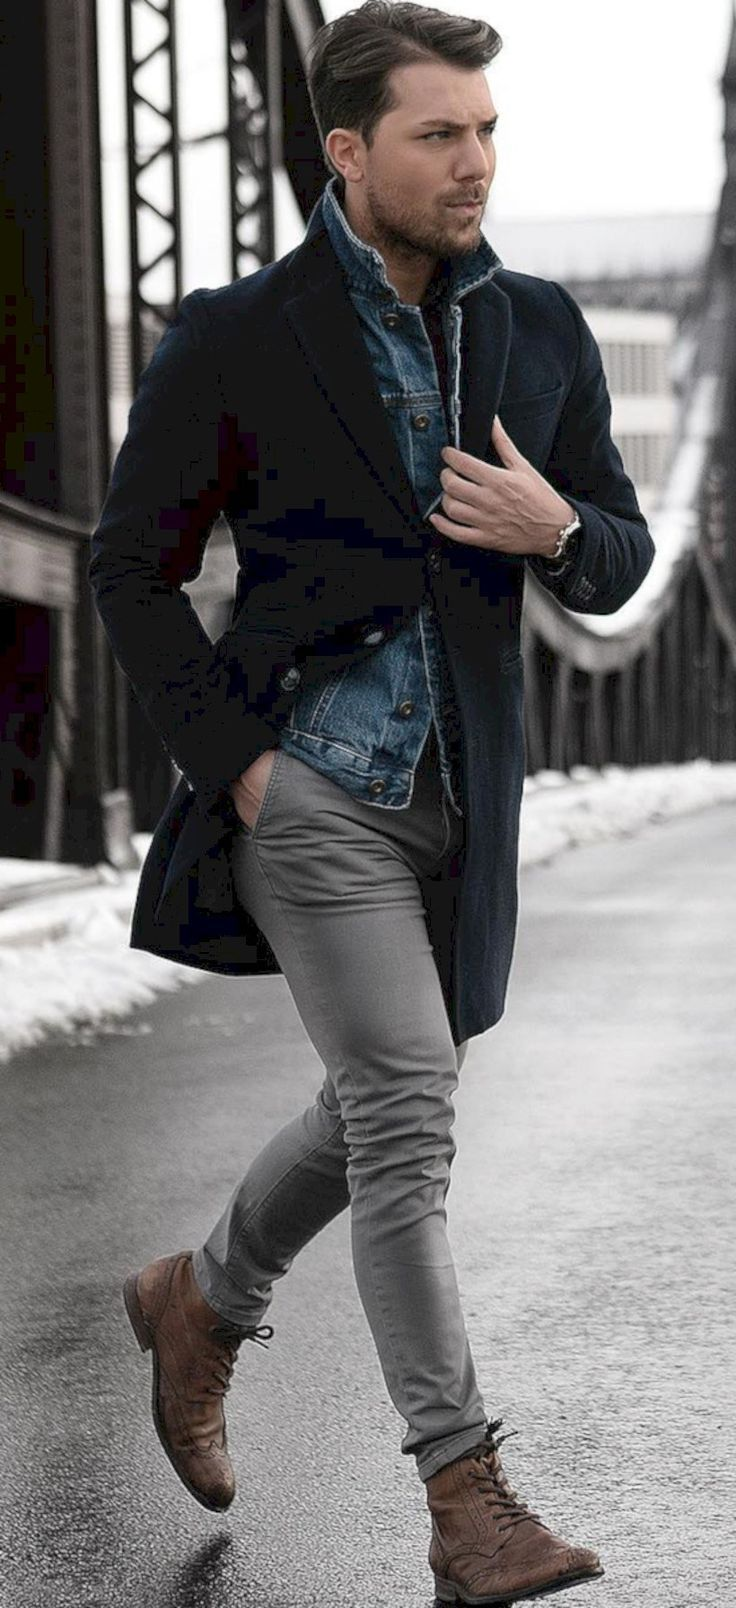 Super Casual Winter Outfit For Modern Men 18 101outfit Com Winter Outfits Men Mens Winter Fashion Mens Fashion Casual Winter